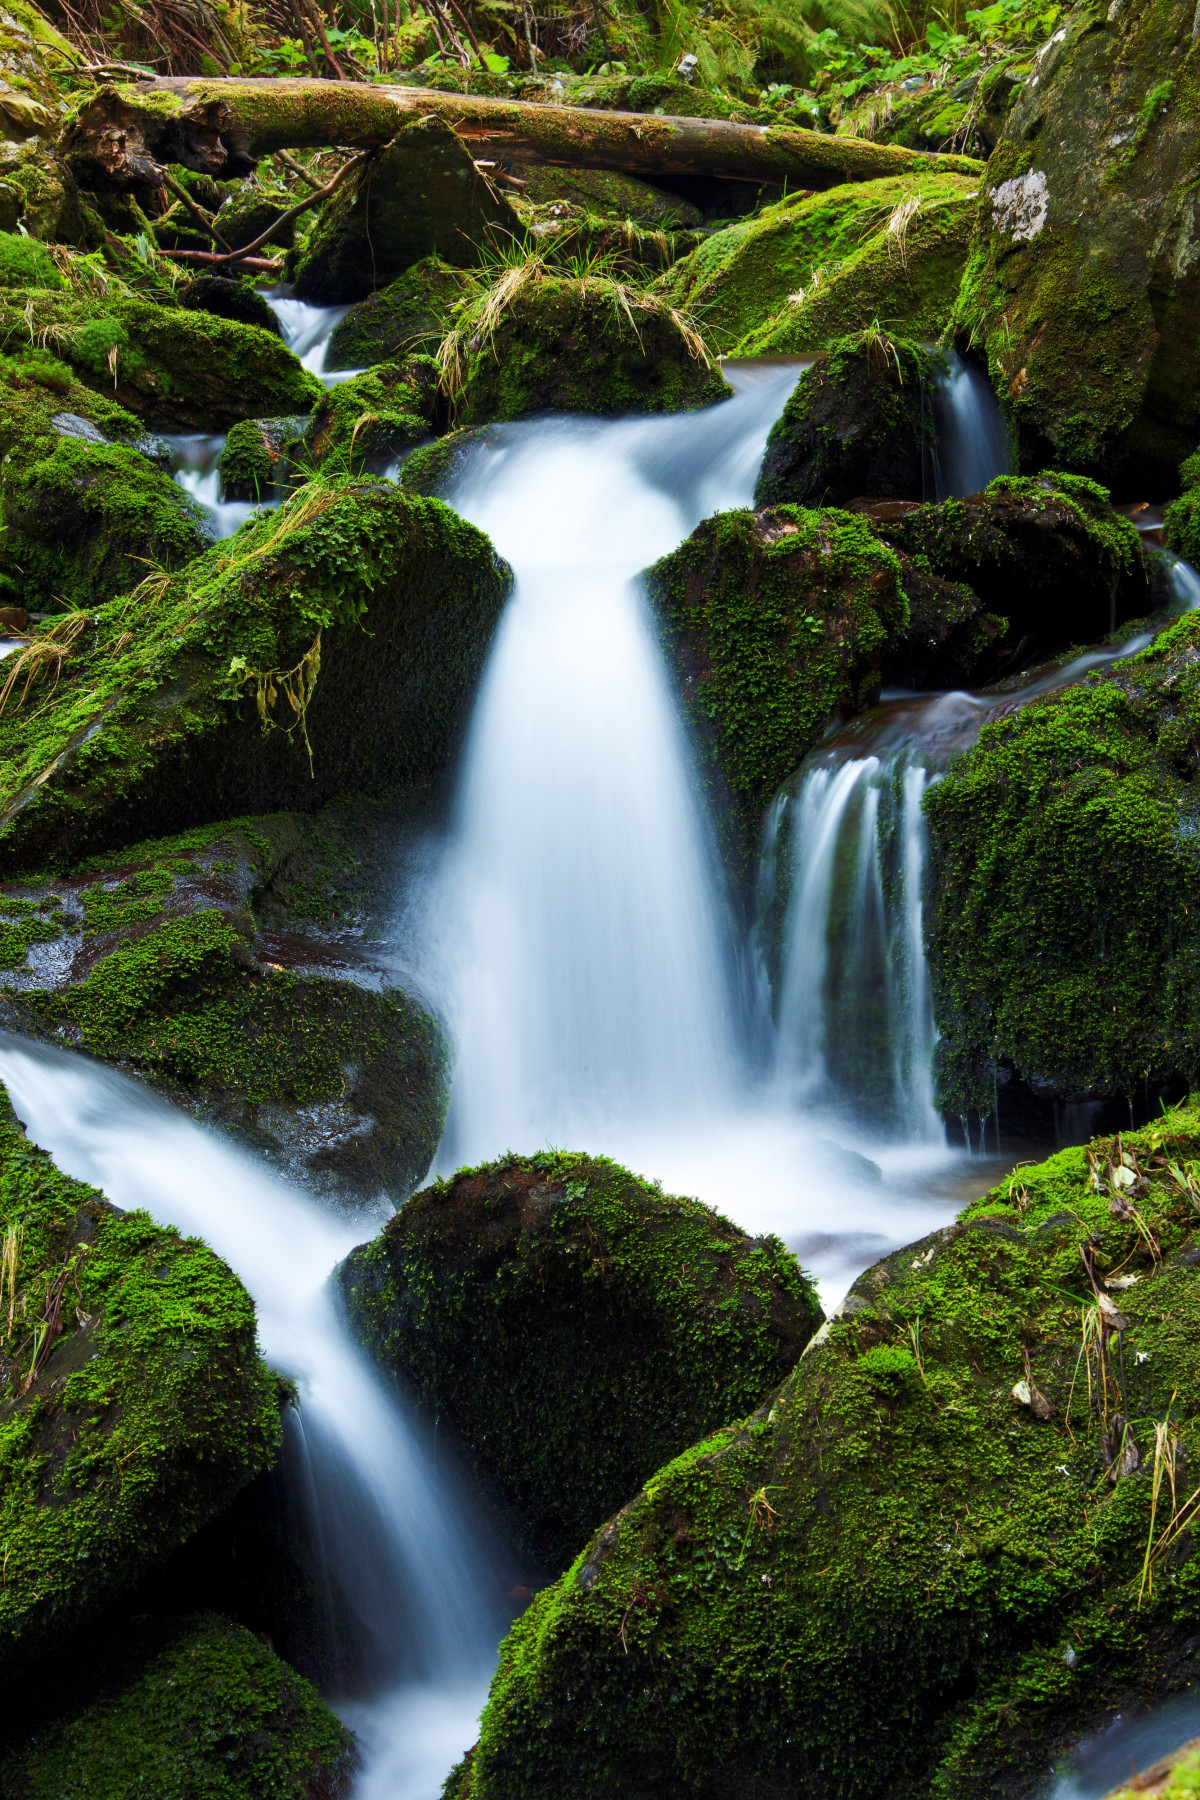 Animated Waterfalls Wallpapers Free Download Free Images Tree Forest Grass Moss Green Evergreen